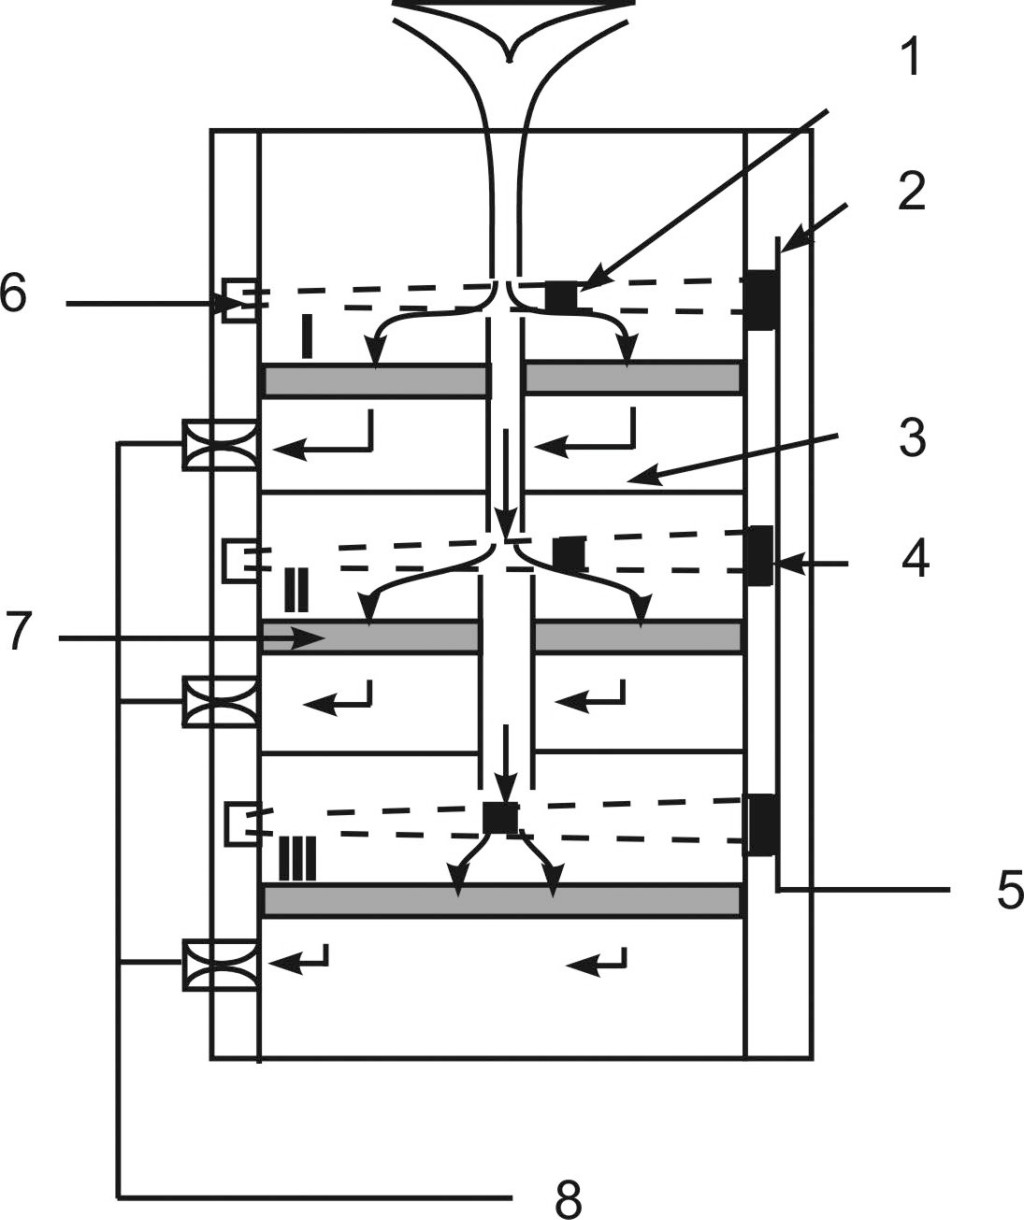 Figure 2. The scheme shows the principle of operation of the RESPICON. The grey shaded units are the collection units for three different aerosol size fractions. Each size fraction is monitored on-line by light scattering. 1: inhalable particle inlet, 2: optical measuring volume, 3: separation plate, 4: light source/detector, 5: connection to data logger, 6: light trap, 7: filter/XAD cassette, 8: connection to sampling pump. Quelle: ITEM/ BAuA